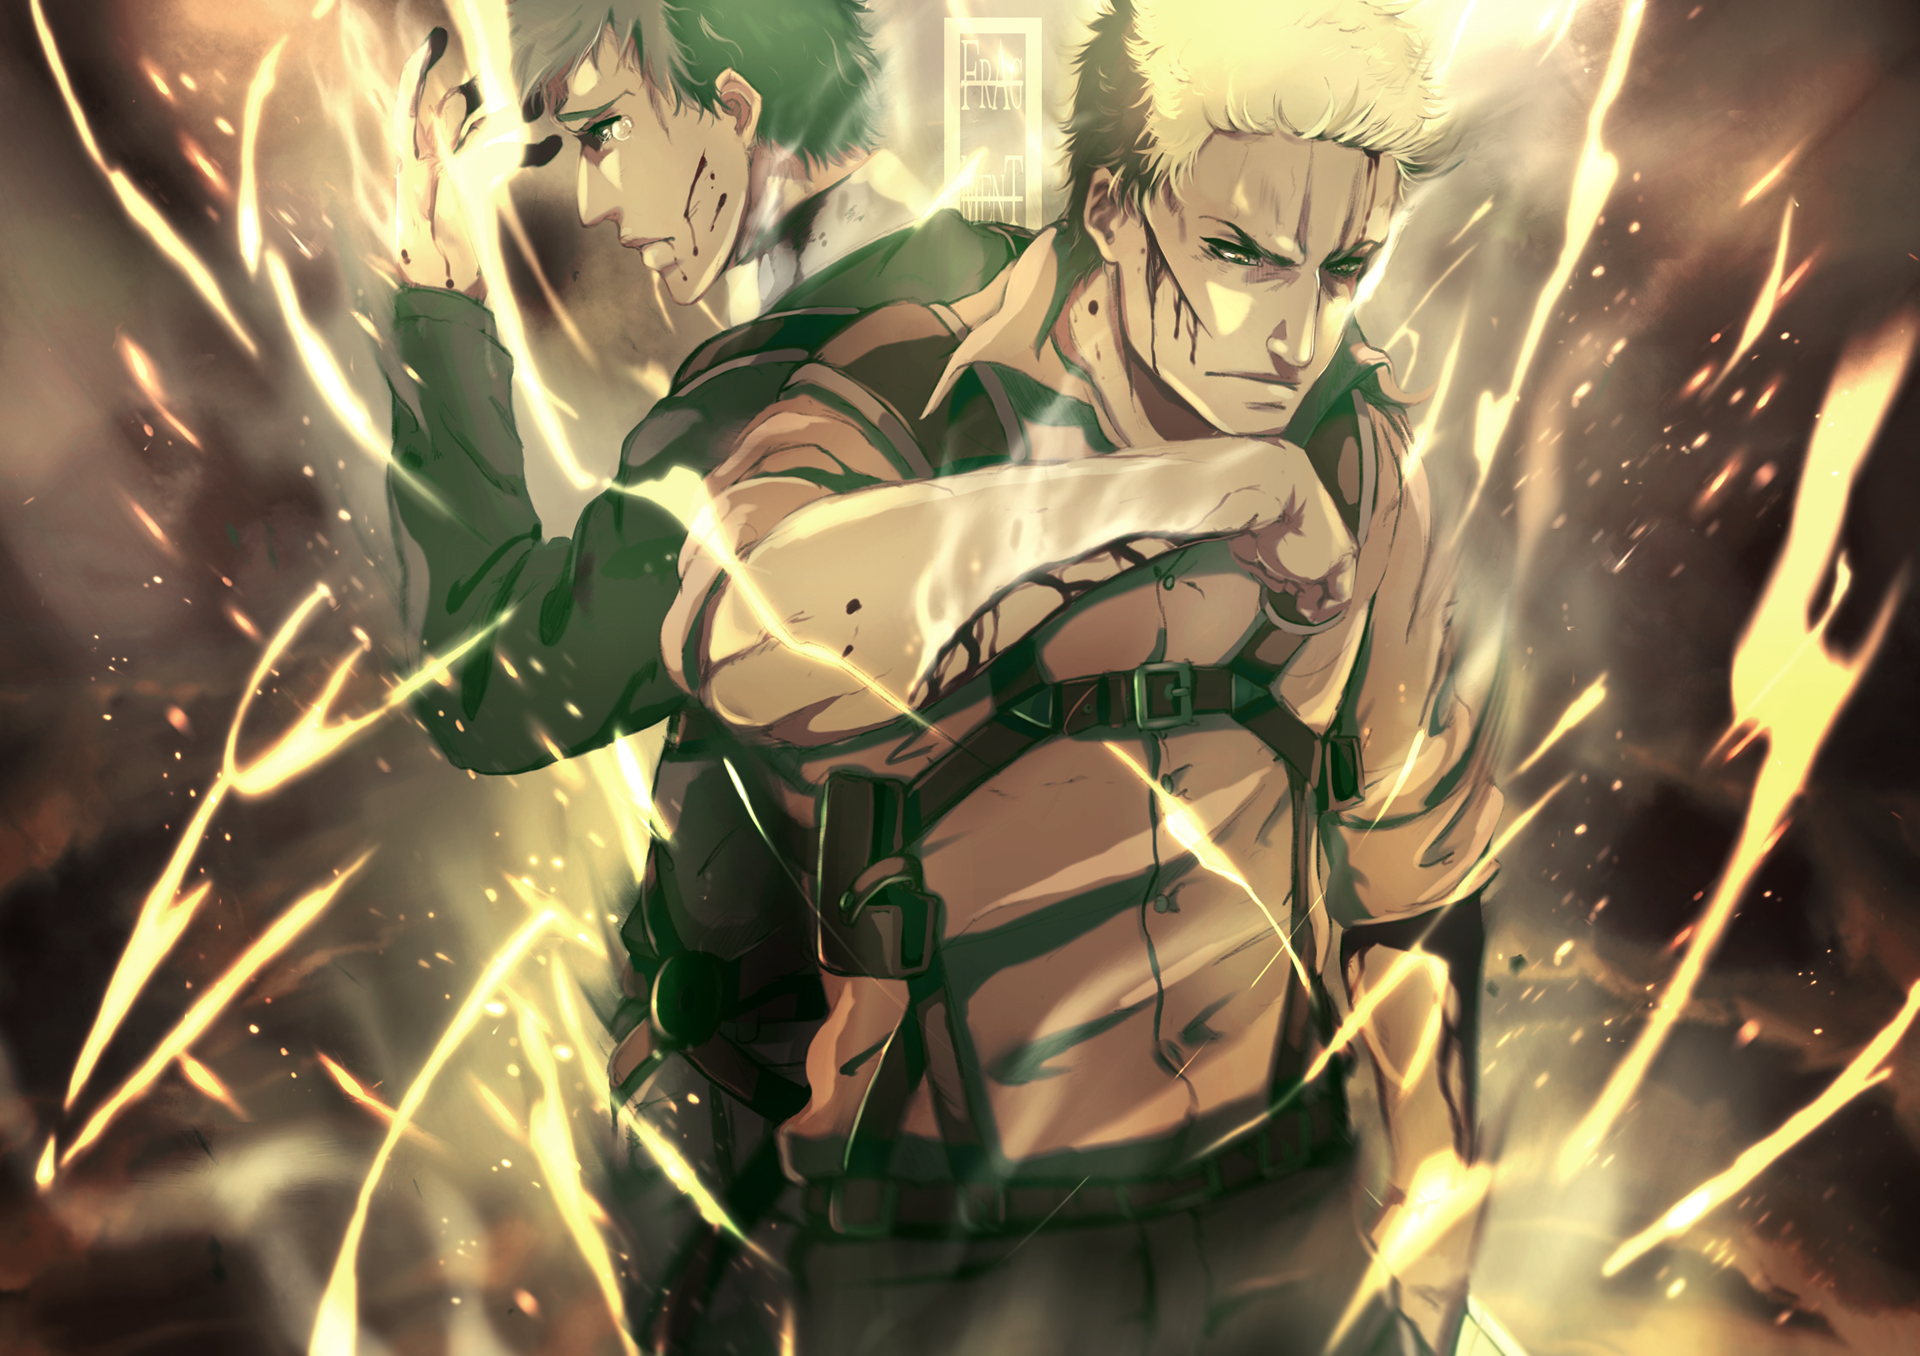 The Warriors – Bertholdt and Reiner | Daily Anime Art